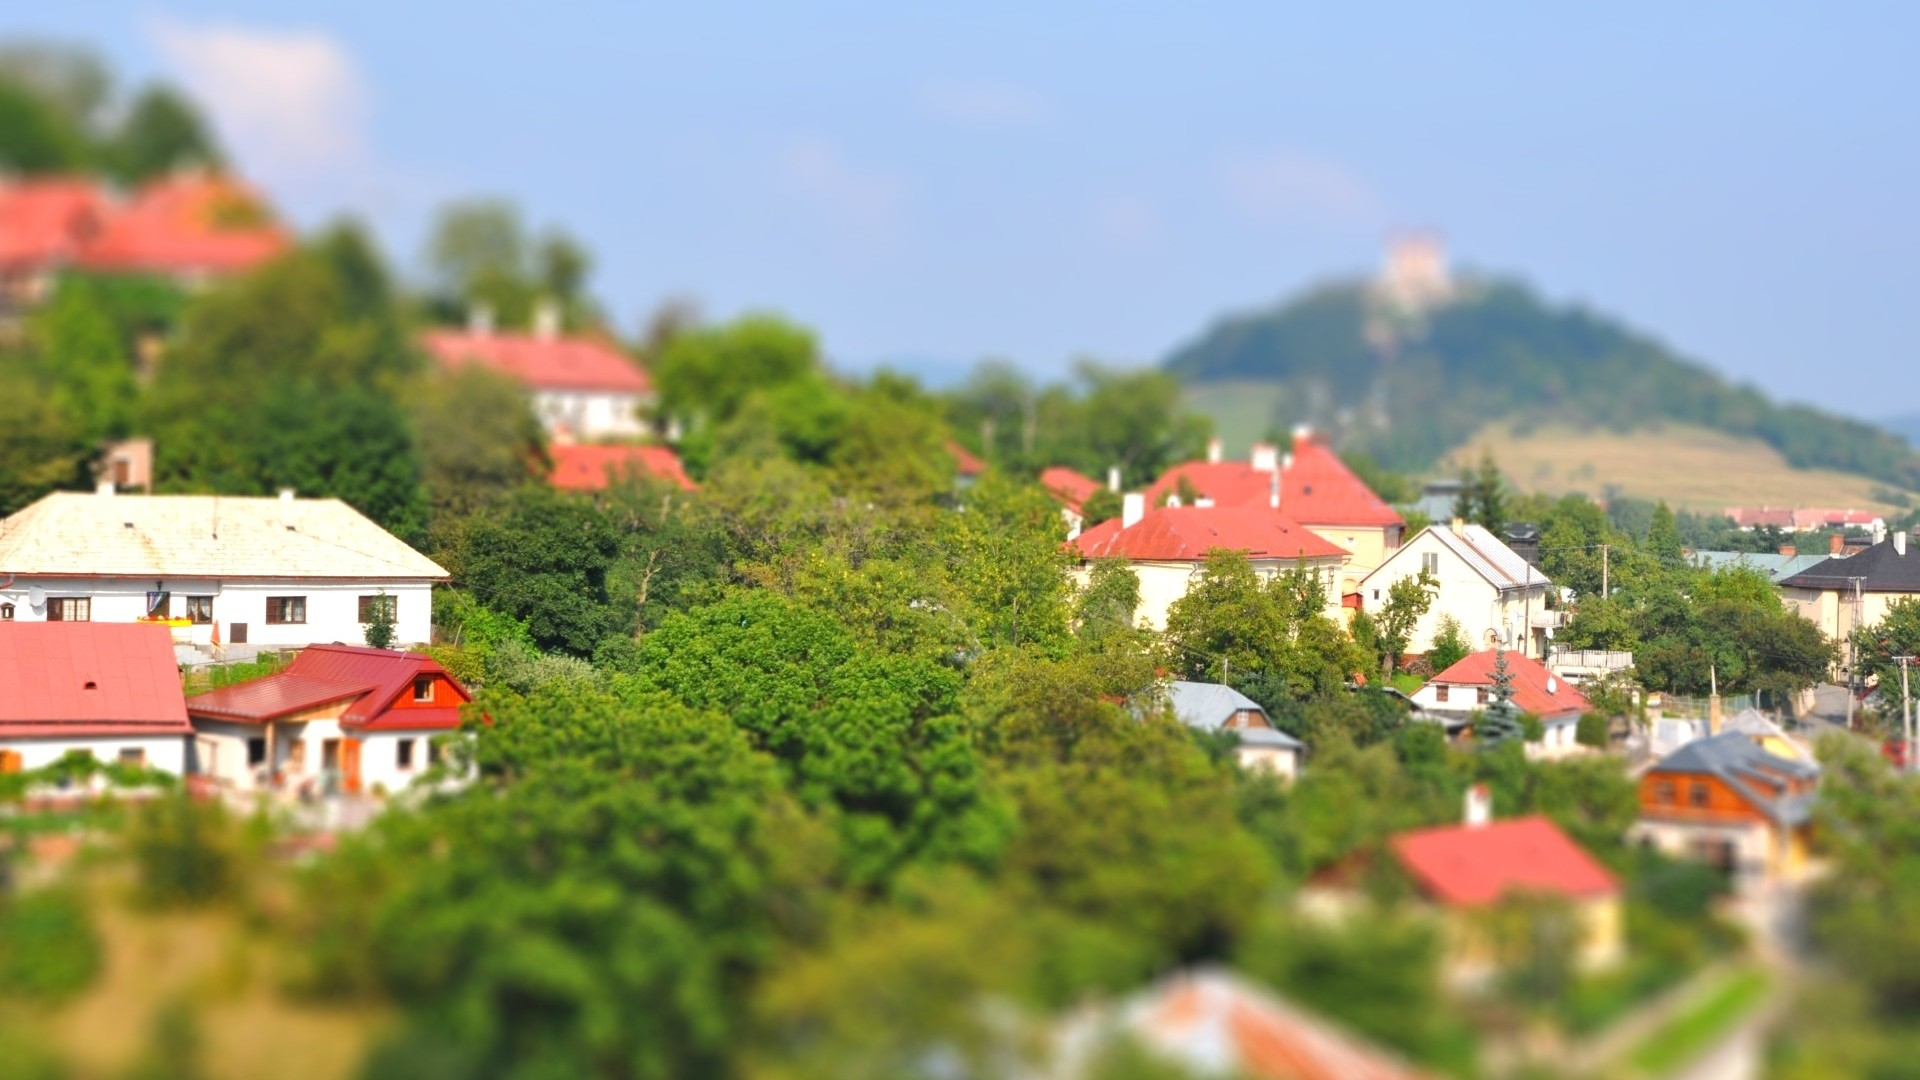 General 1920x1080 architecture town house building landscape Slovakia trees hills castle tilt shift rooftops nature